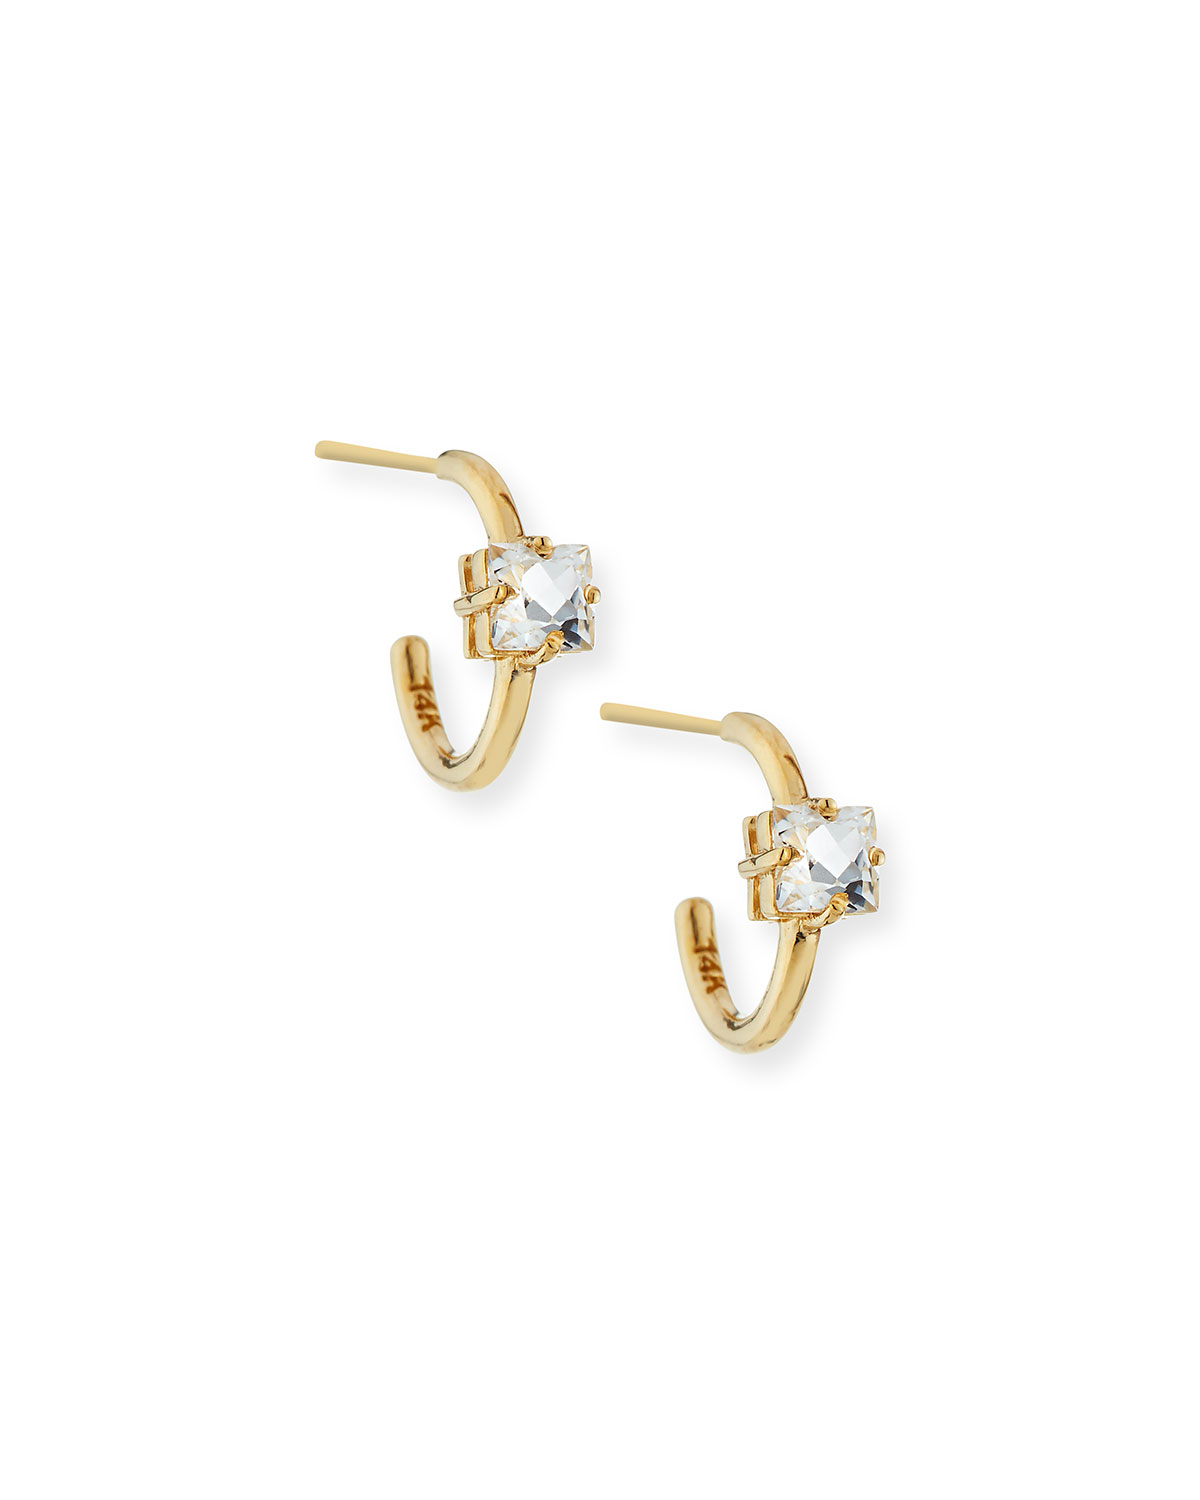 Suzanne Kalan 14k White Topaz Hexagon Earrings pDFPSp